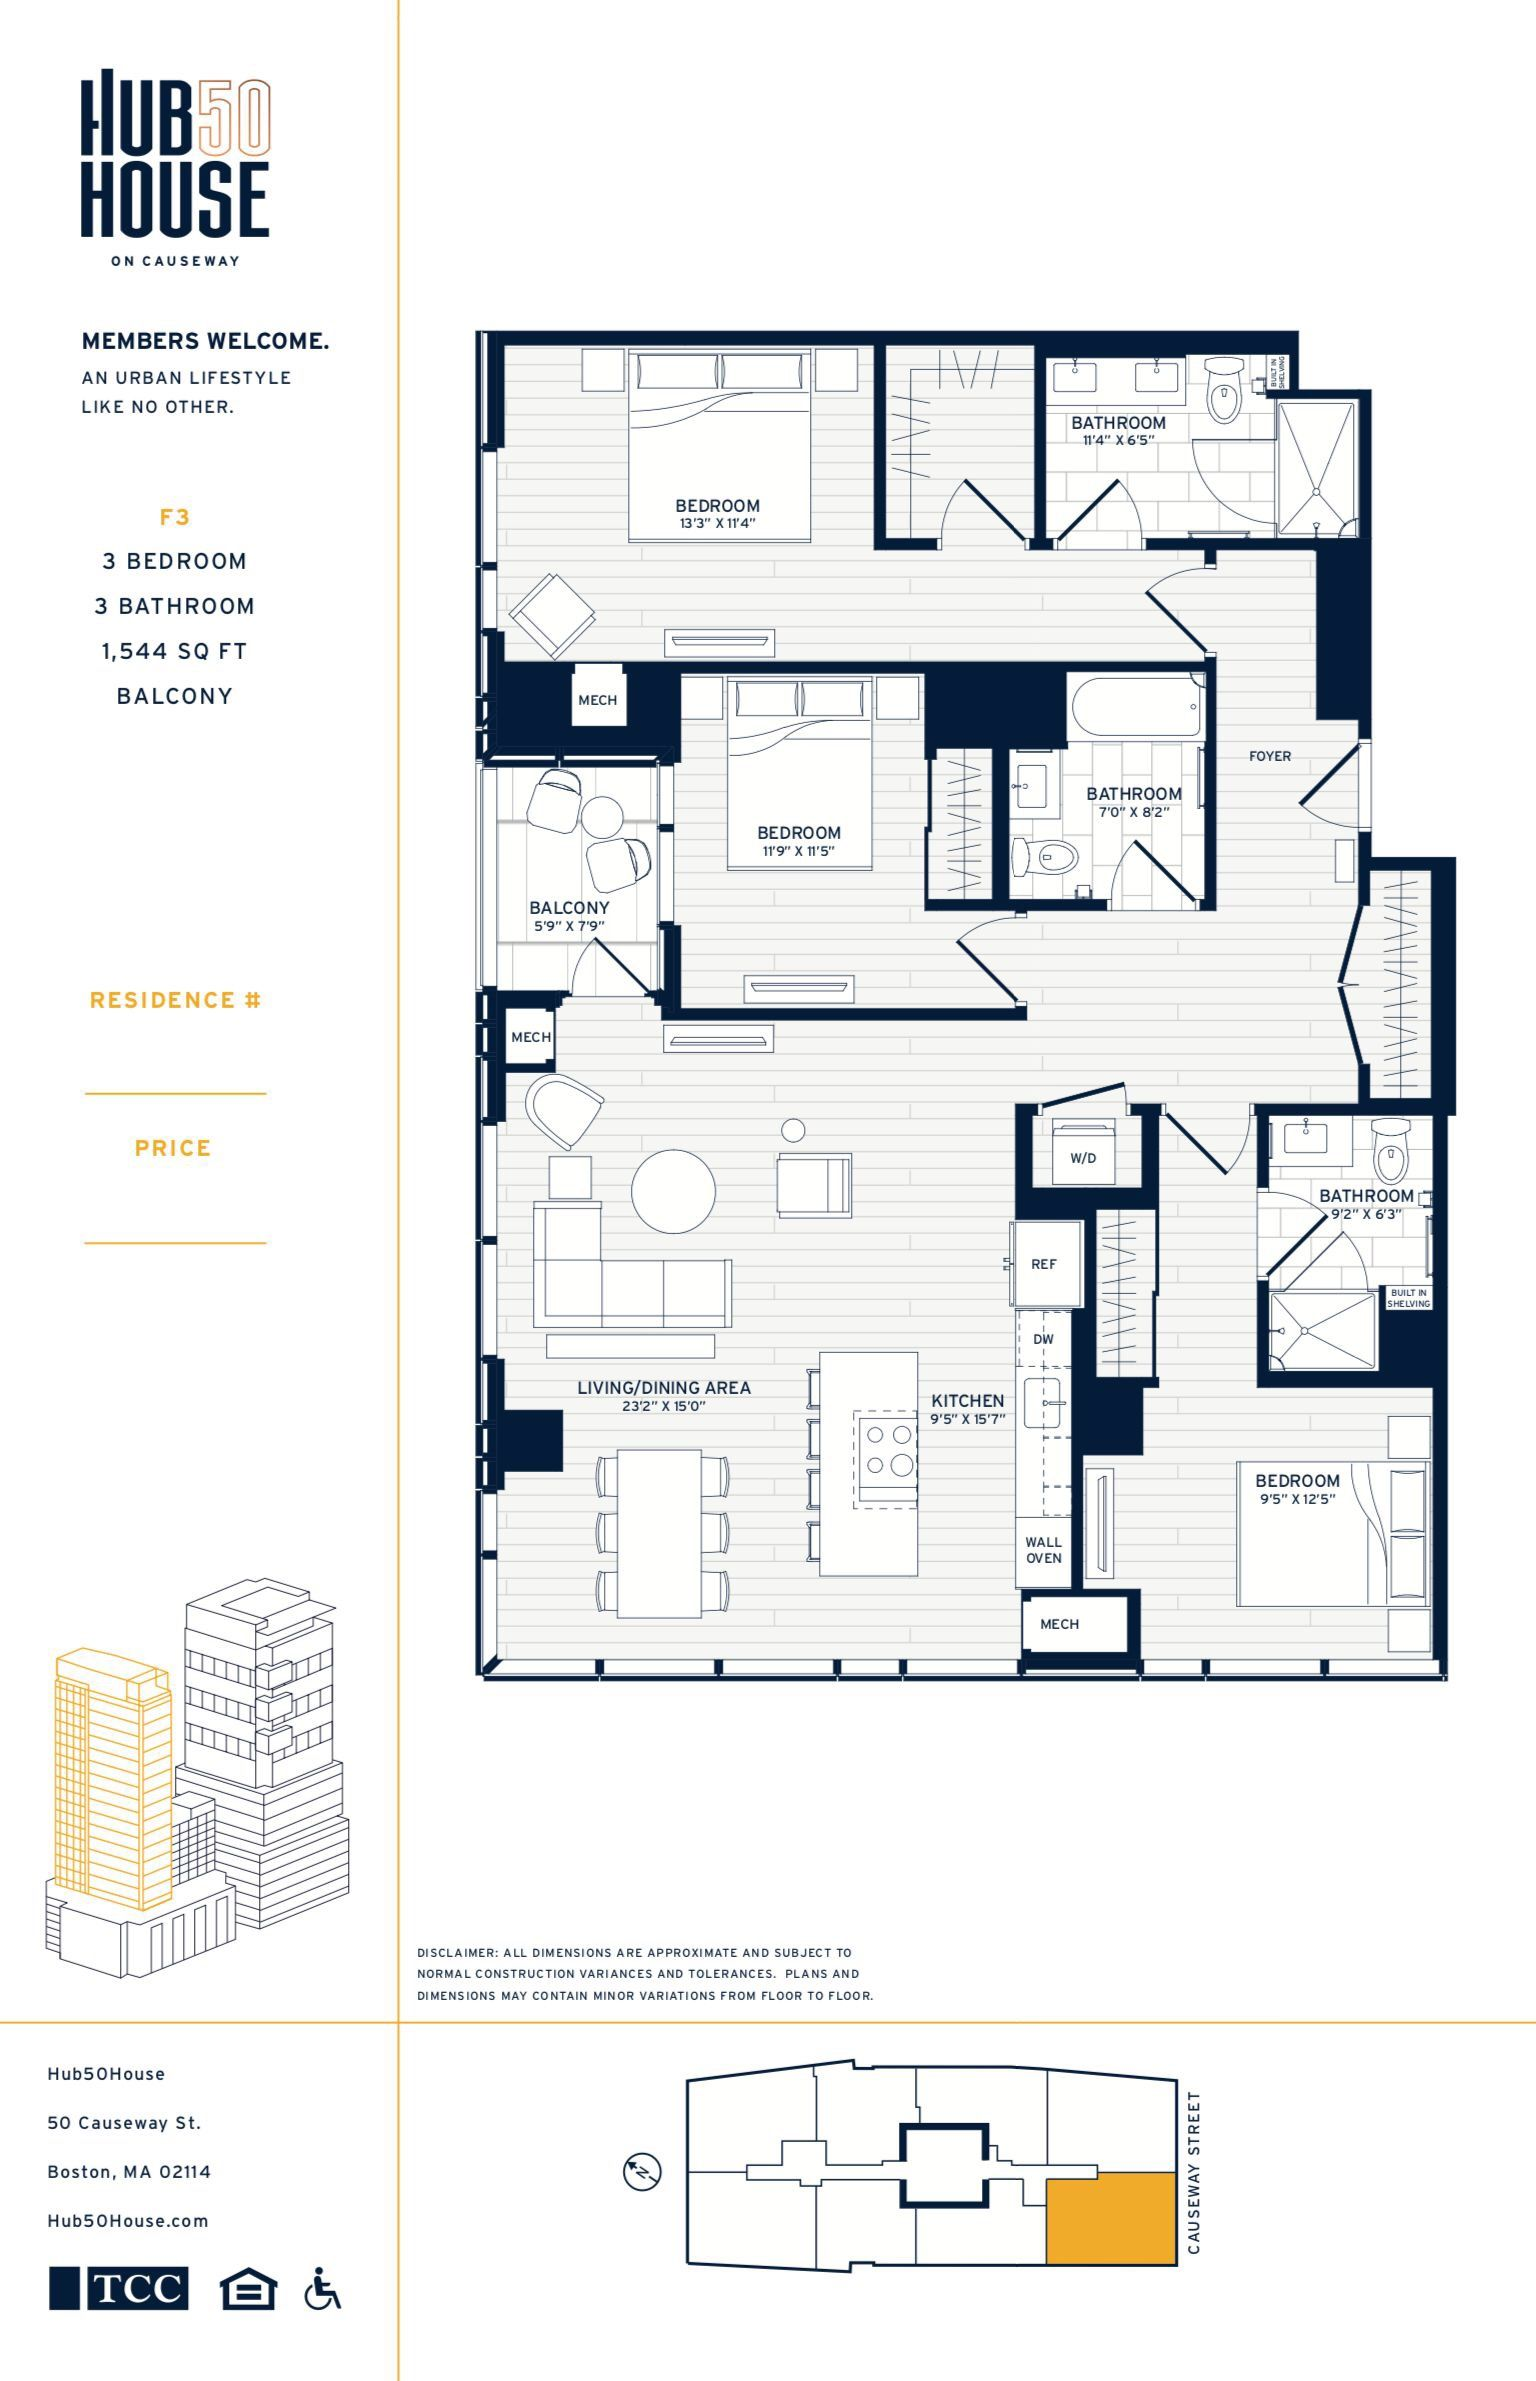 Hub 50 House On Causeway Boston 3 Bedroom Residence Apartment